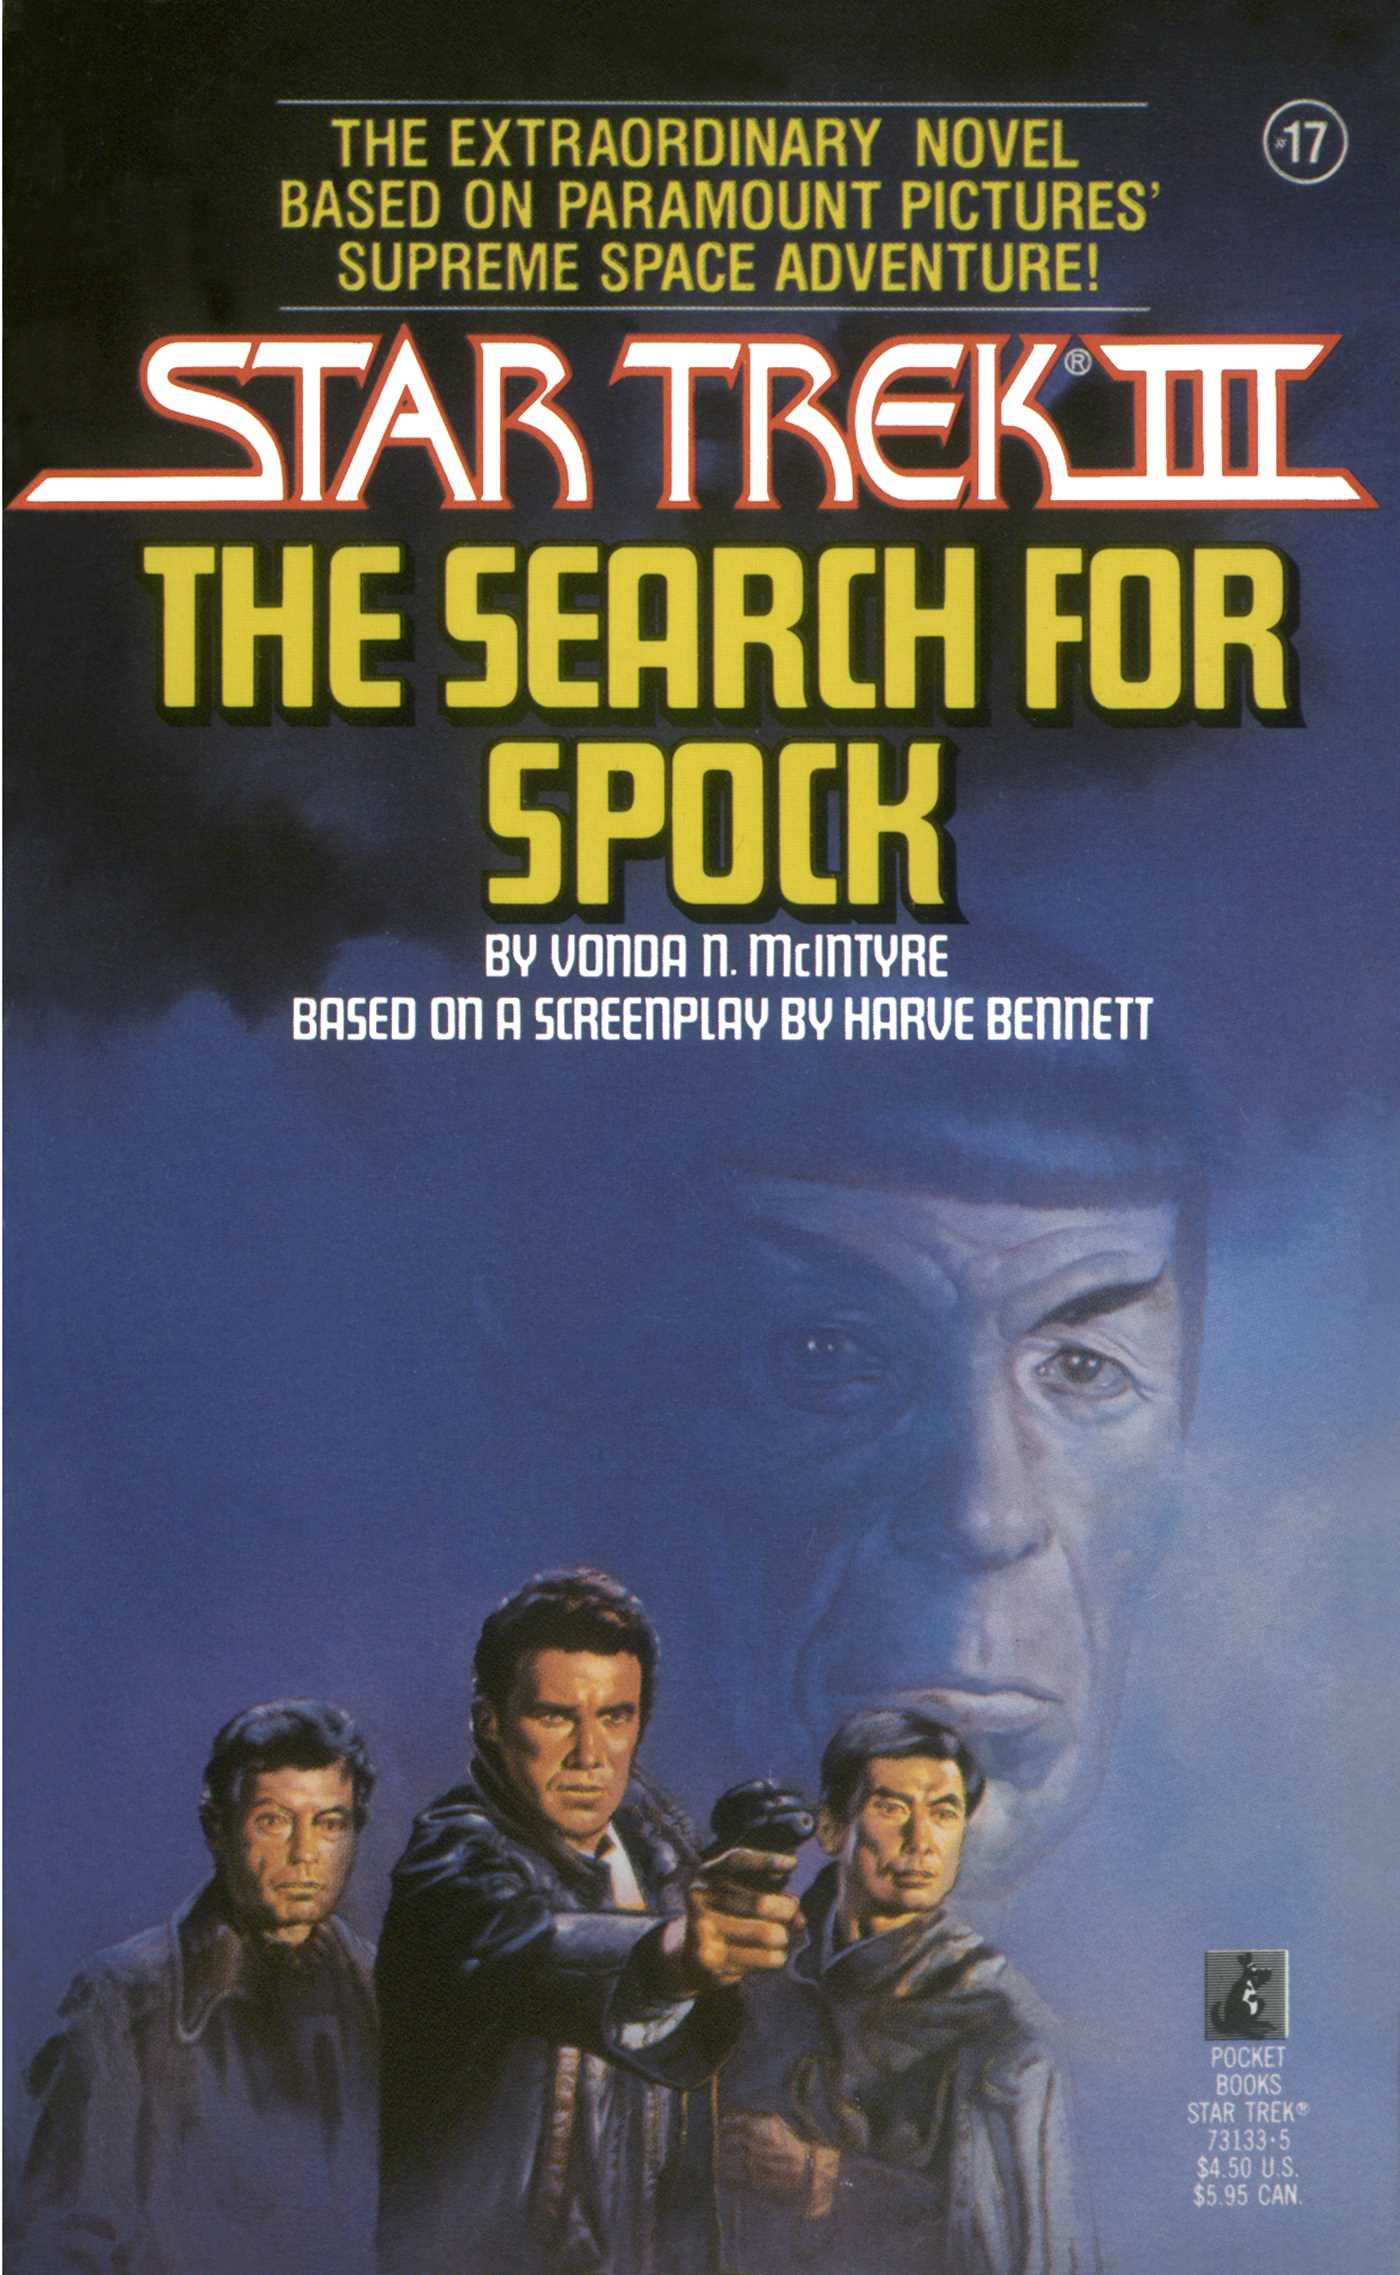 Star trek iii the search for spock movie tie in novelization 9780743419680 hr